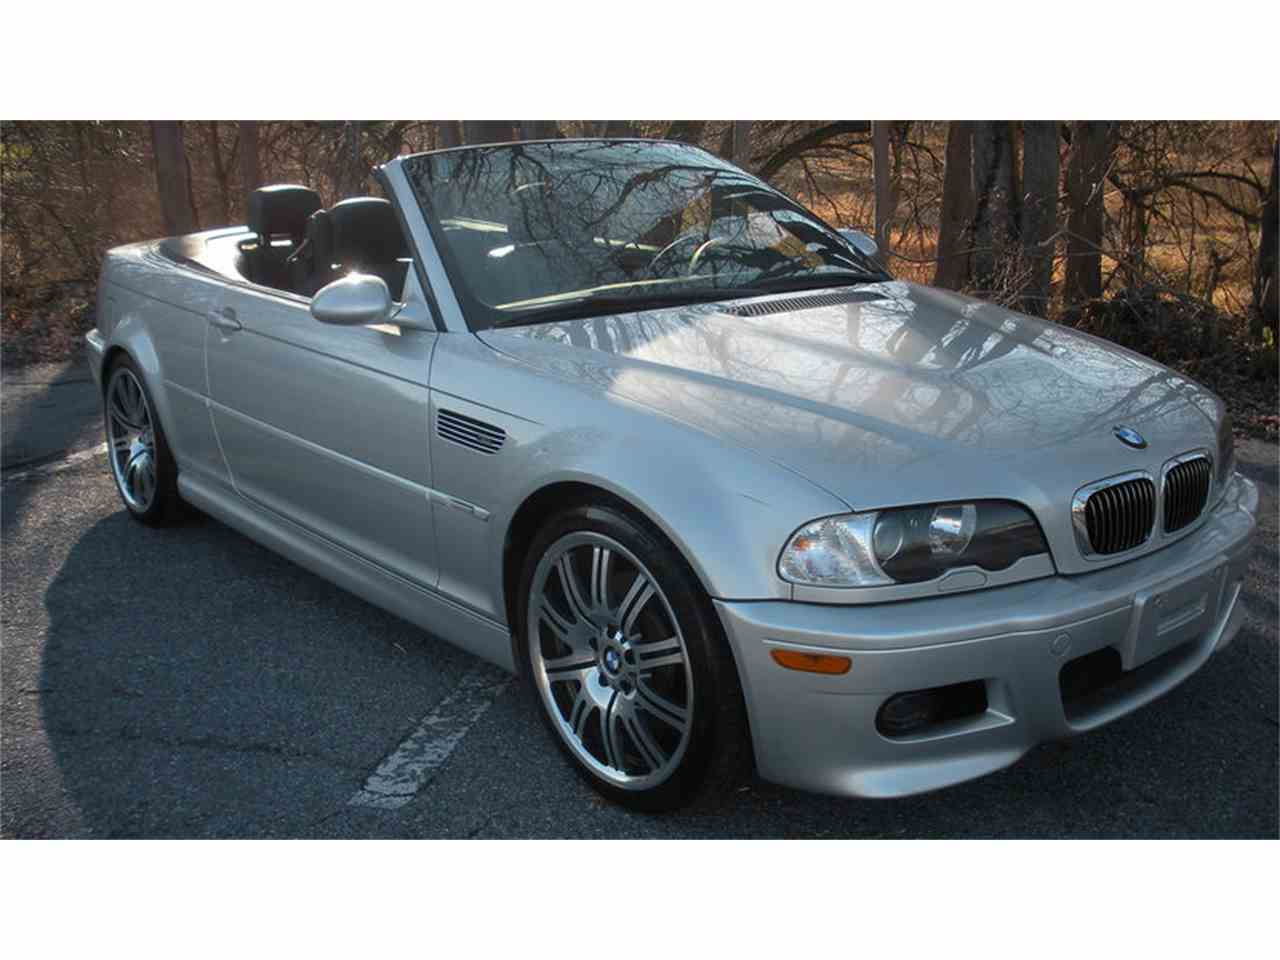 ga htm used near sale convertible bmw stock c for l main marietta